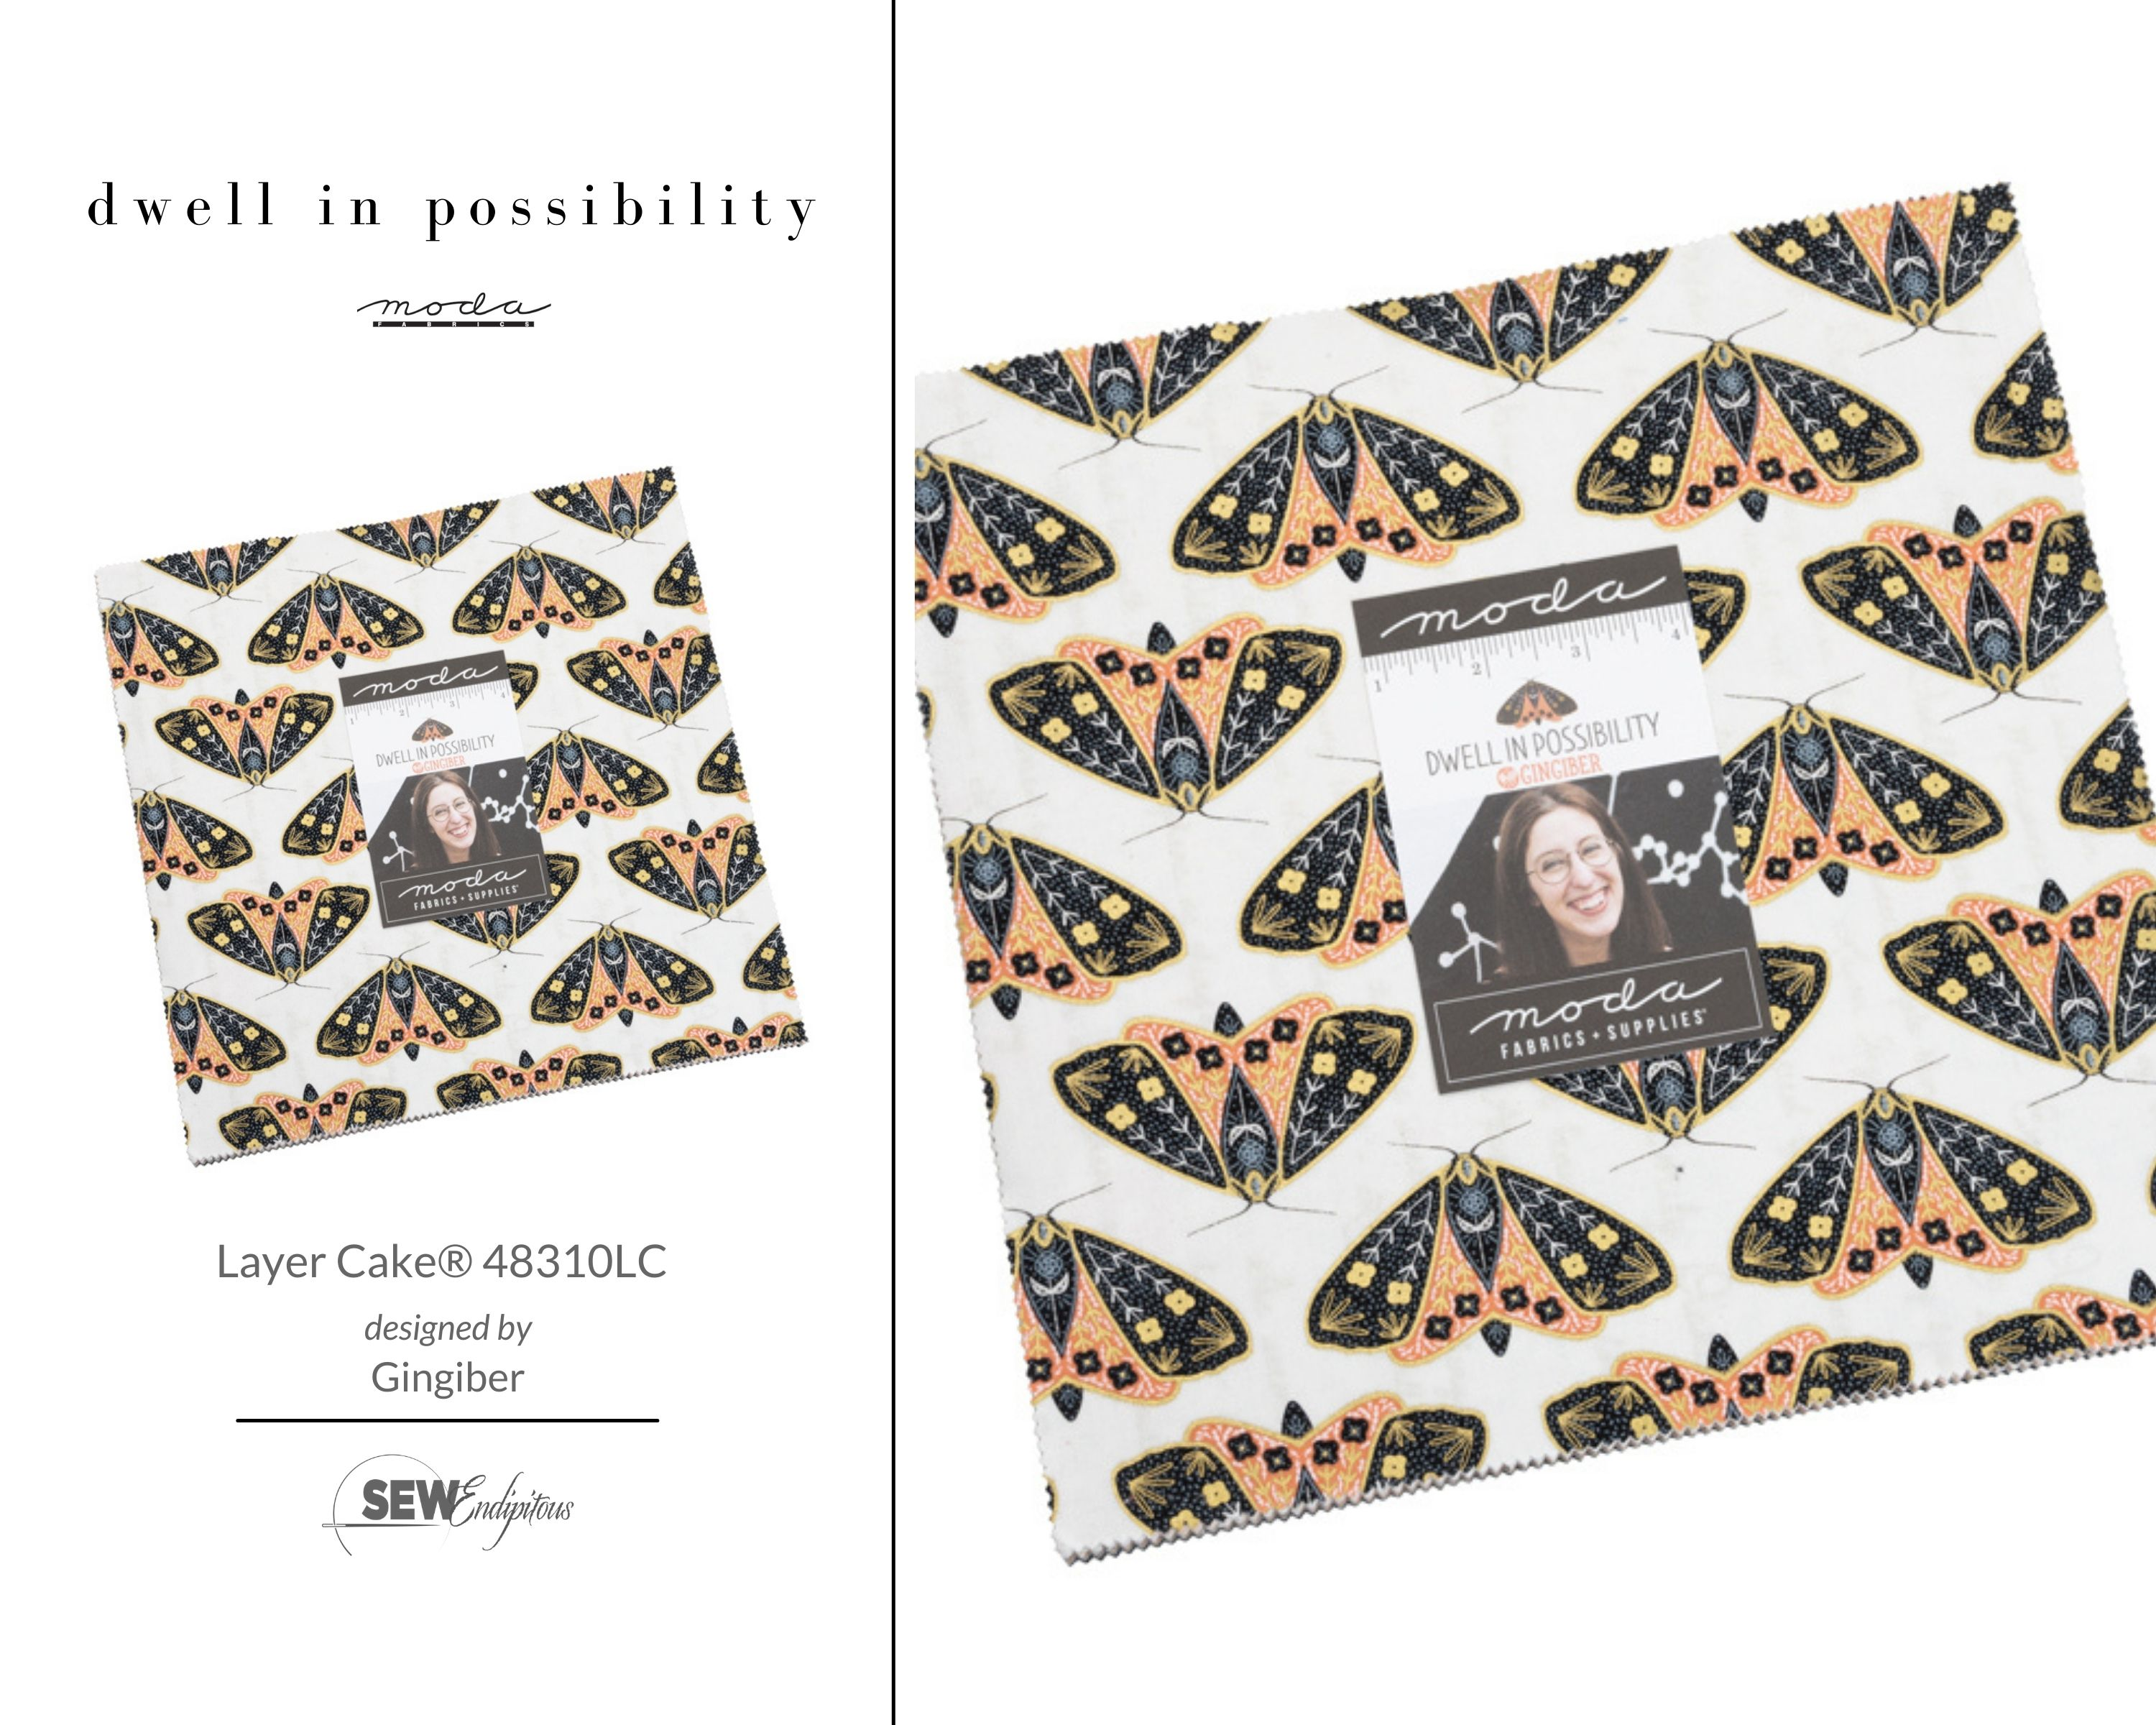 Dwell in Possibility - Layer Cake 48310LC